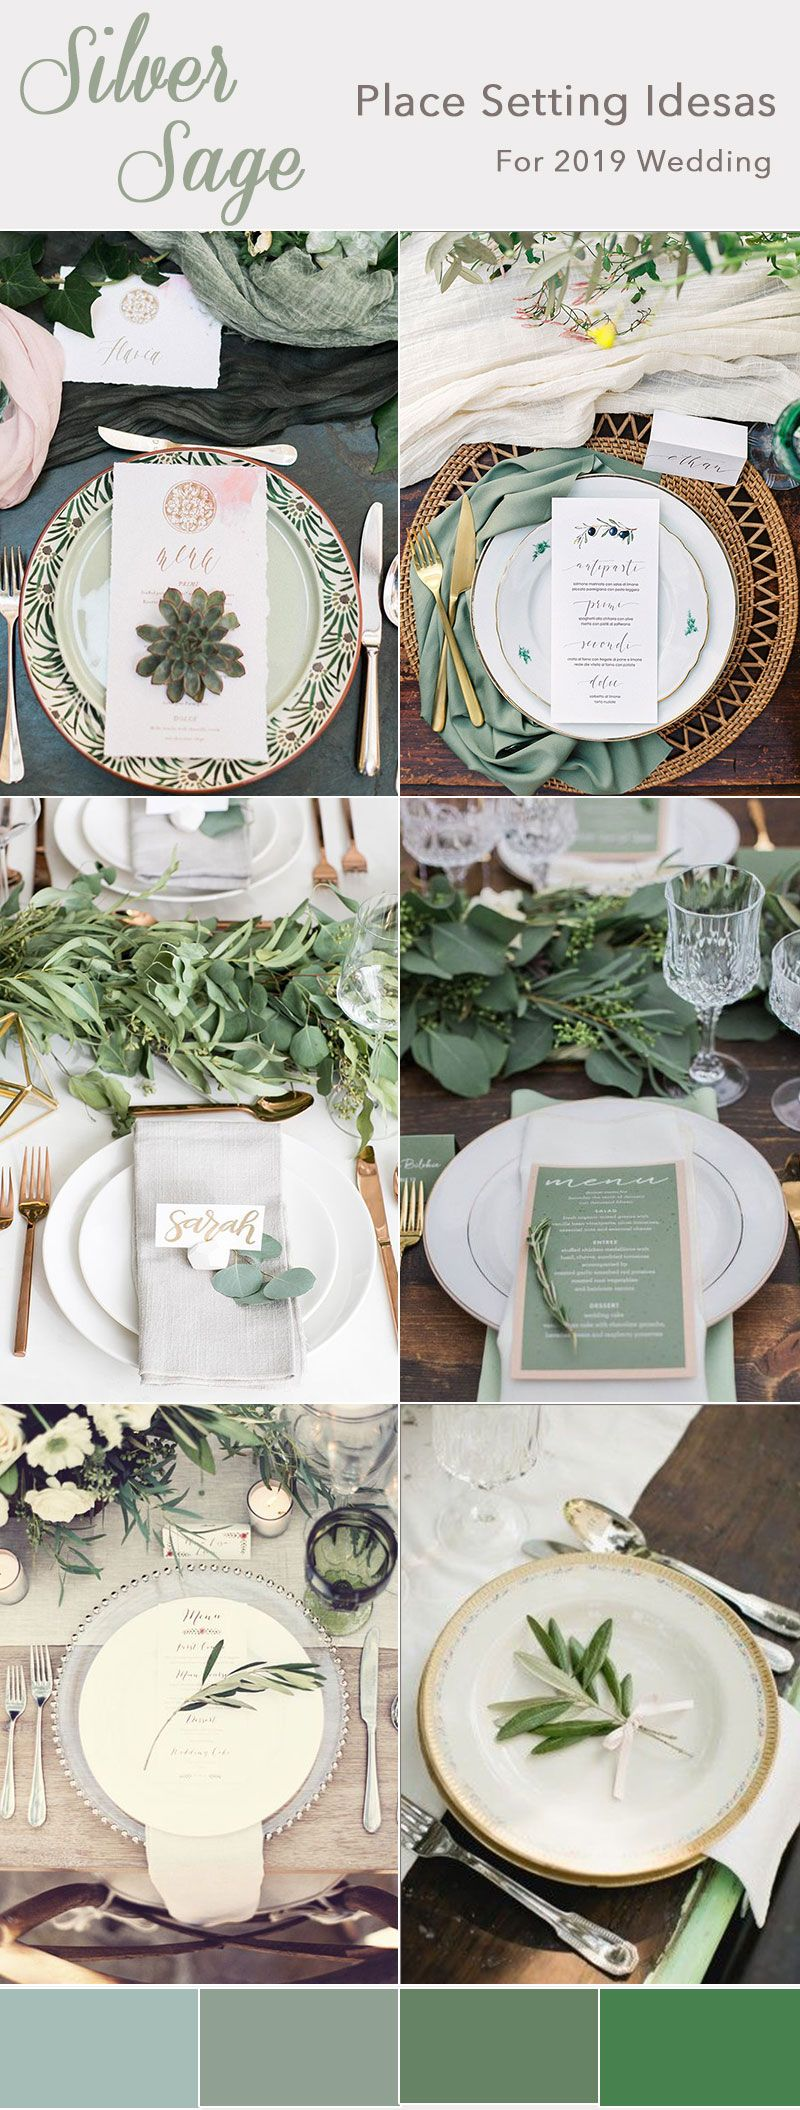 Wedding place setting ideas in silver sage